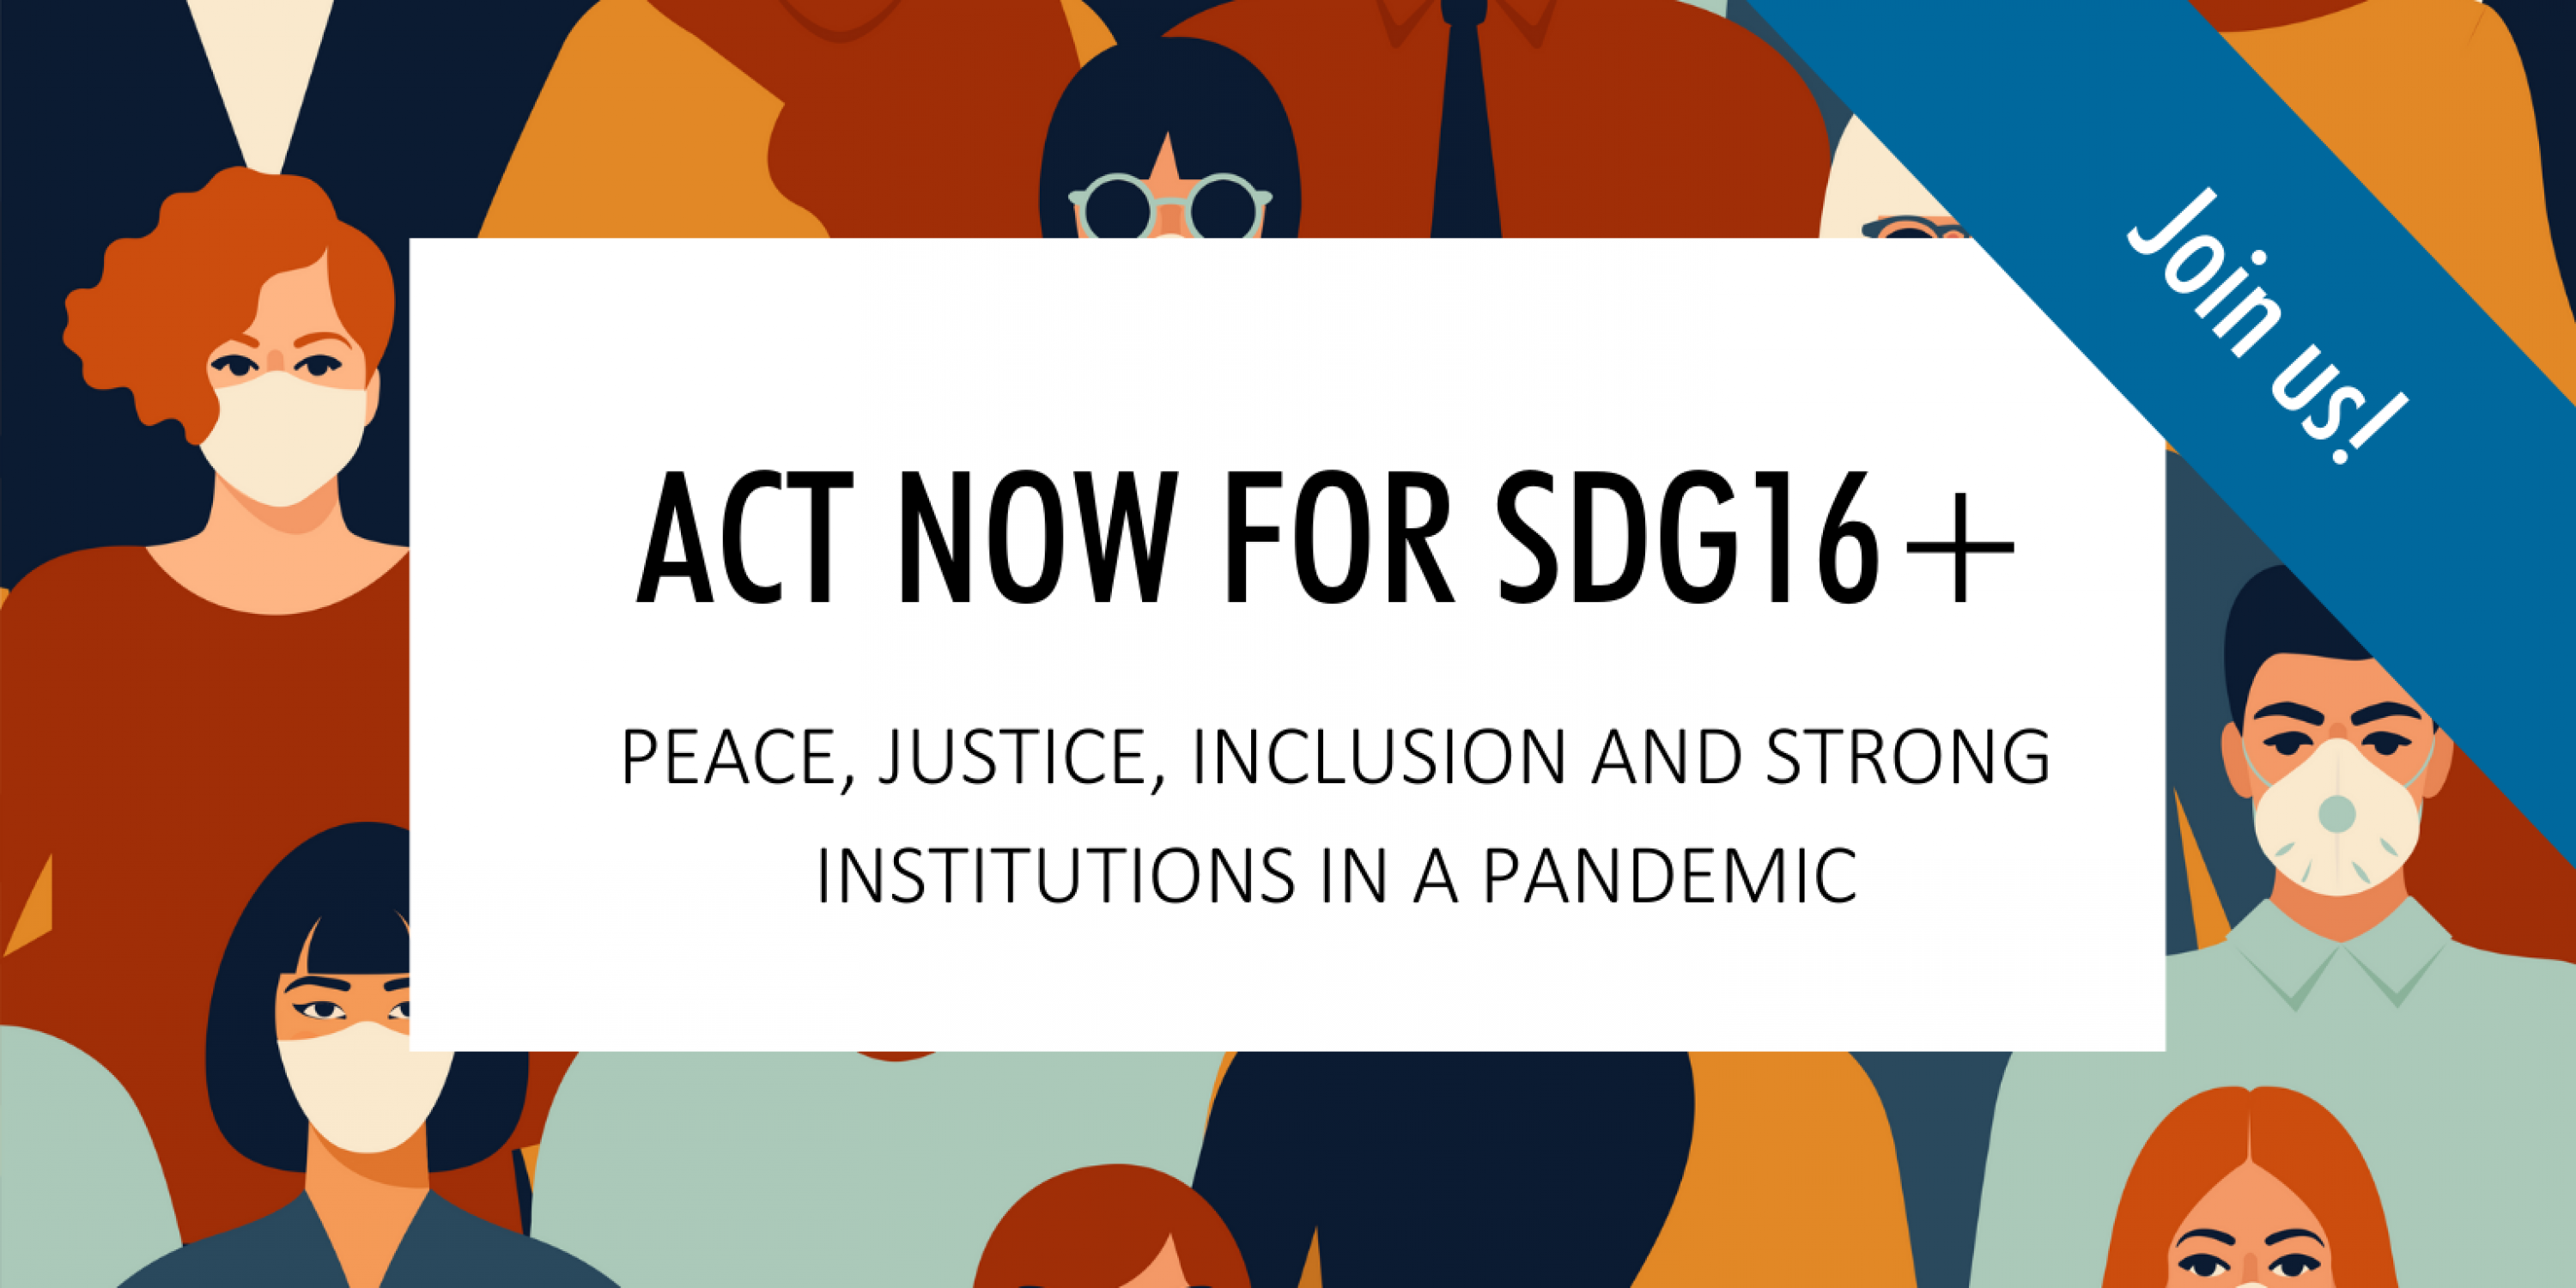 SDG16+ Call to Action